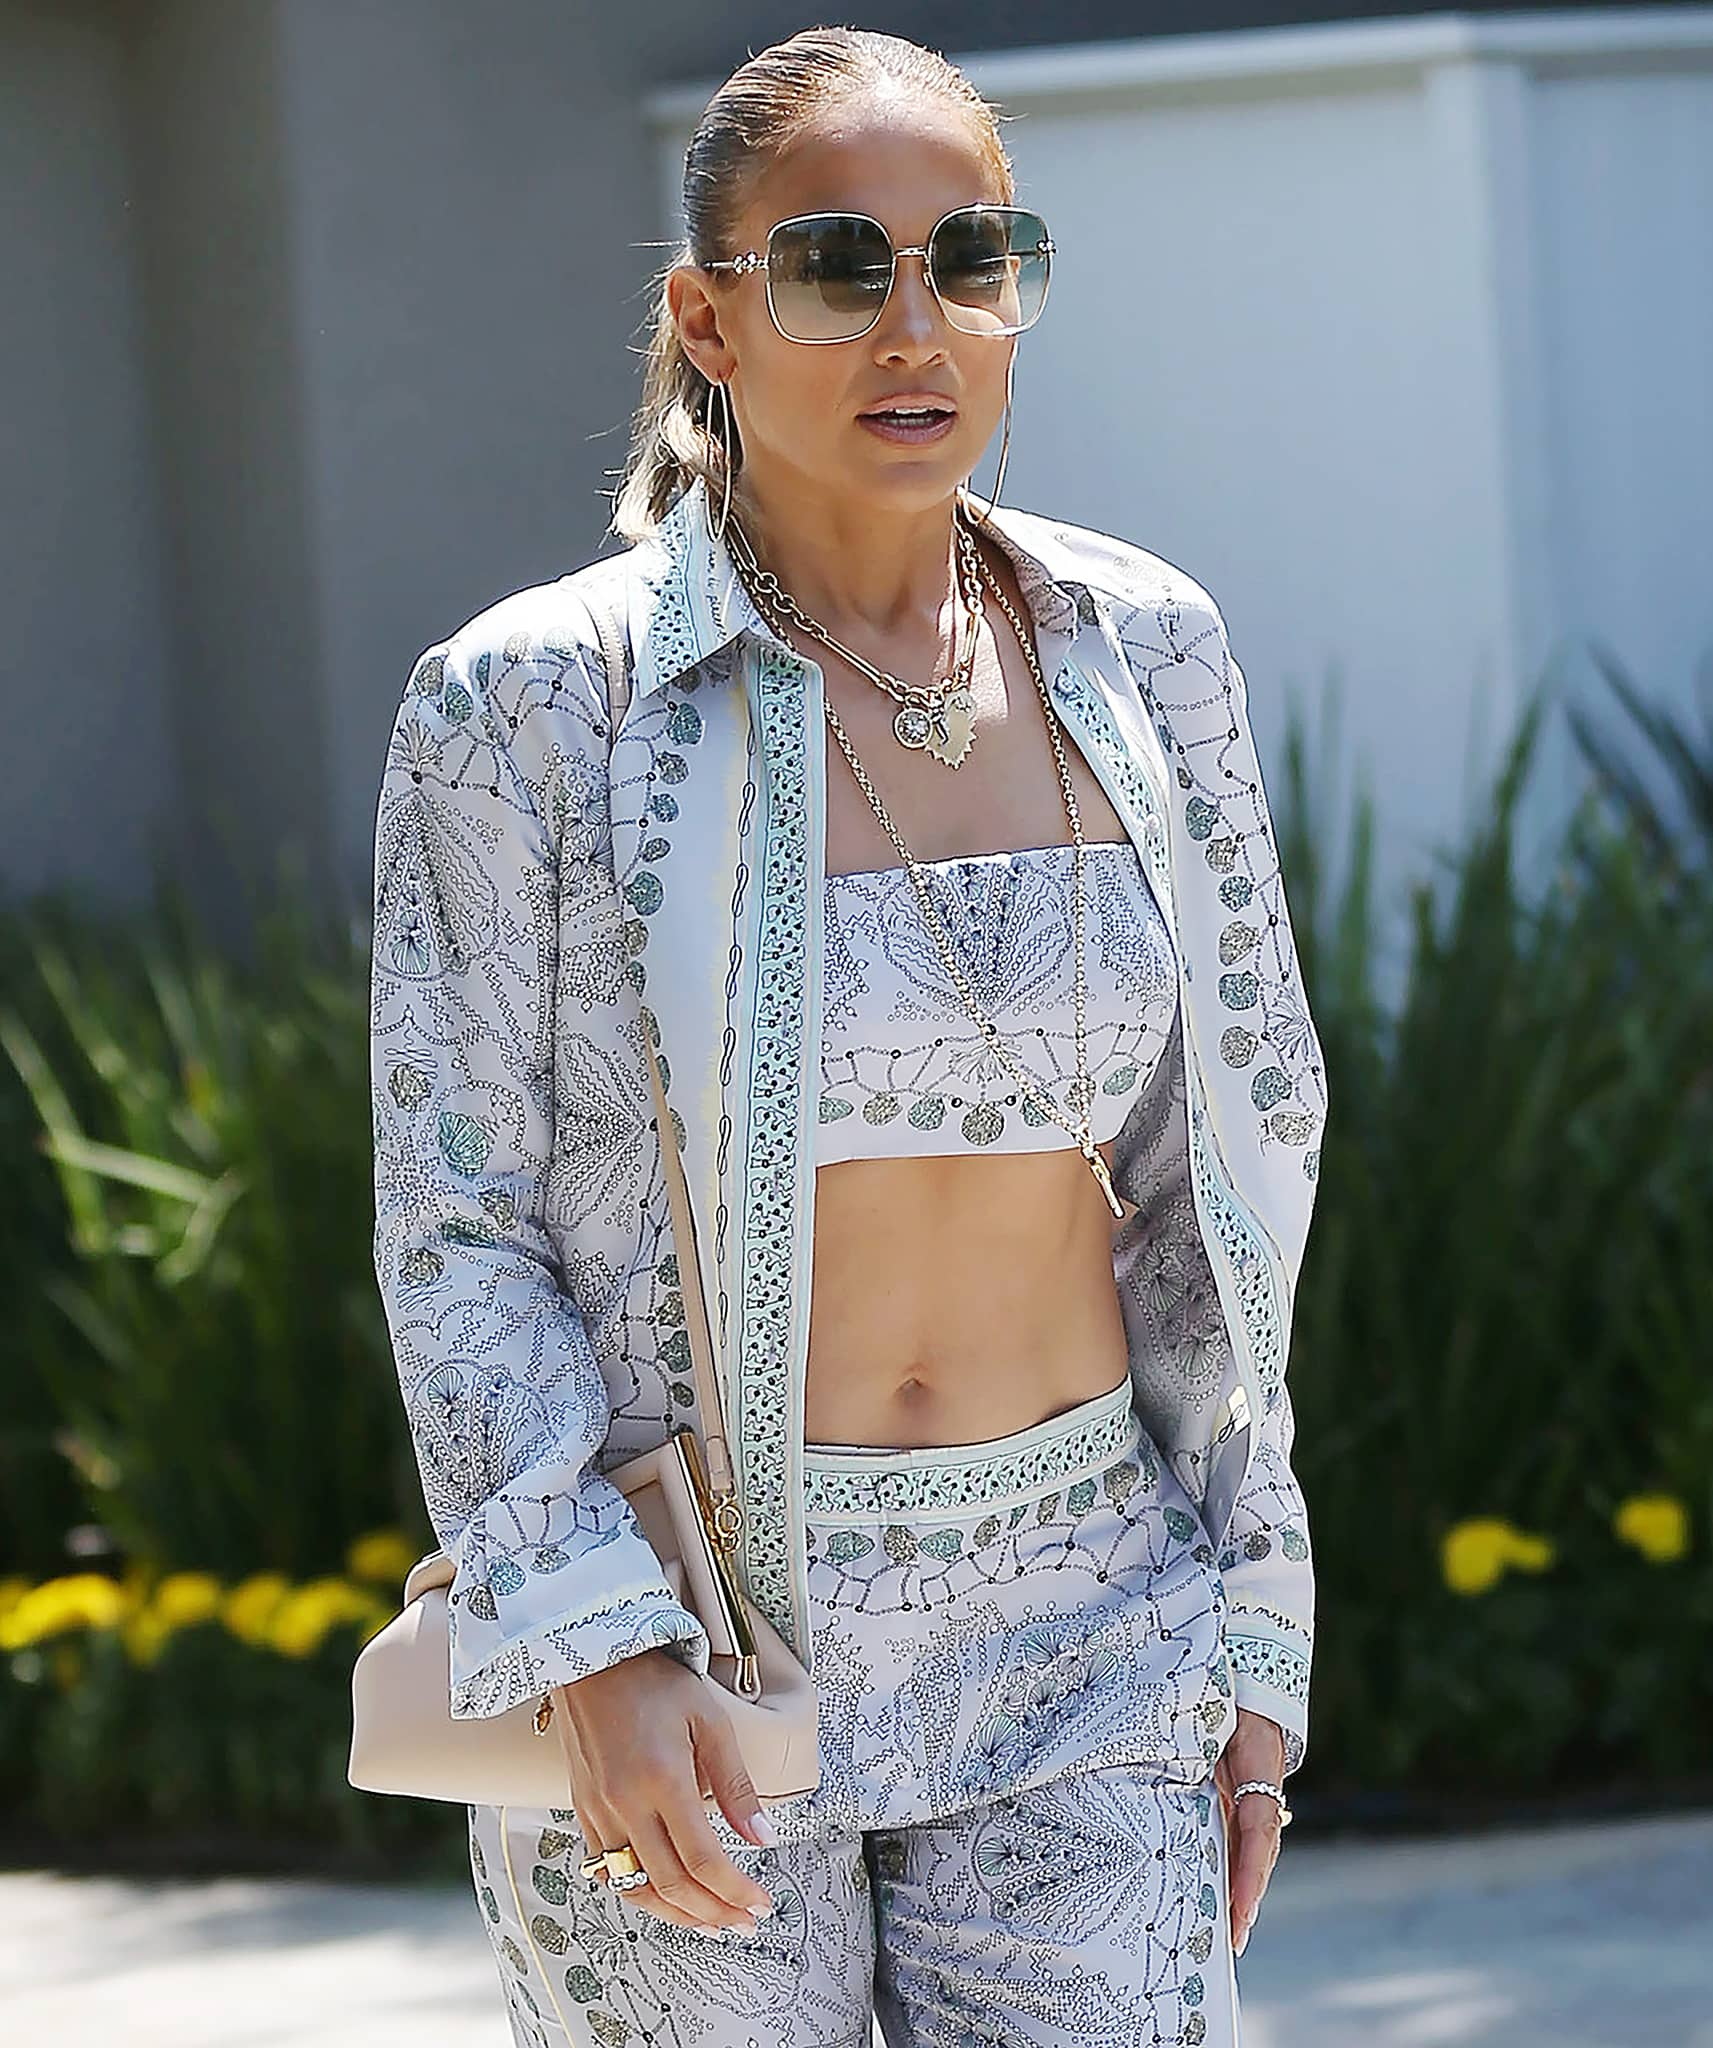 Jennifer Lopez slicks her hair back into a neat ponytail and accessorizes with Foundrae necklaces and Gucci sunglasses